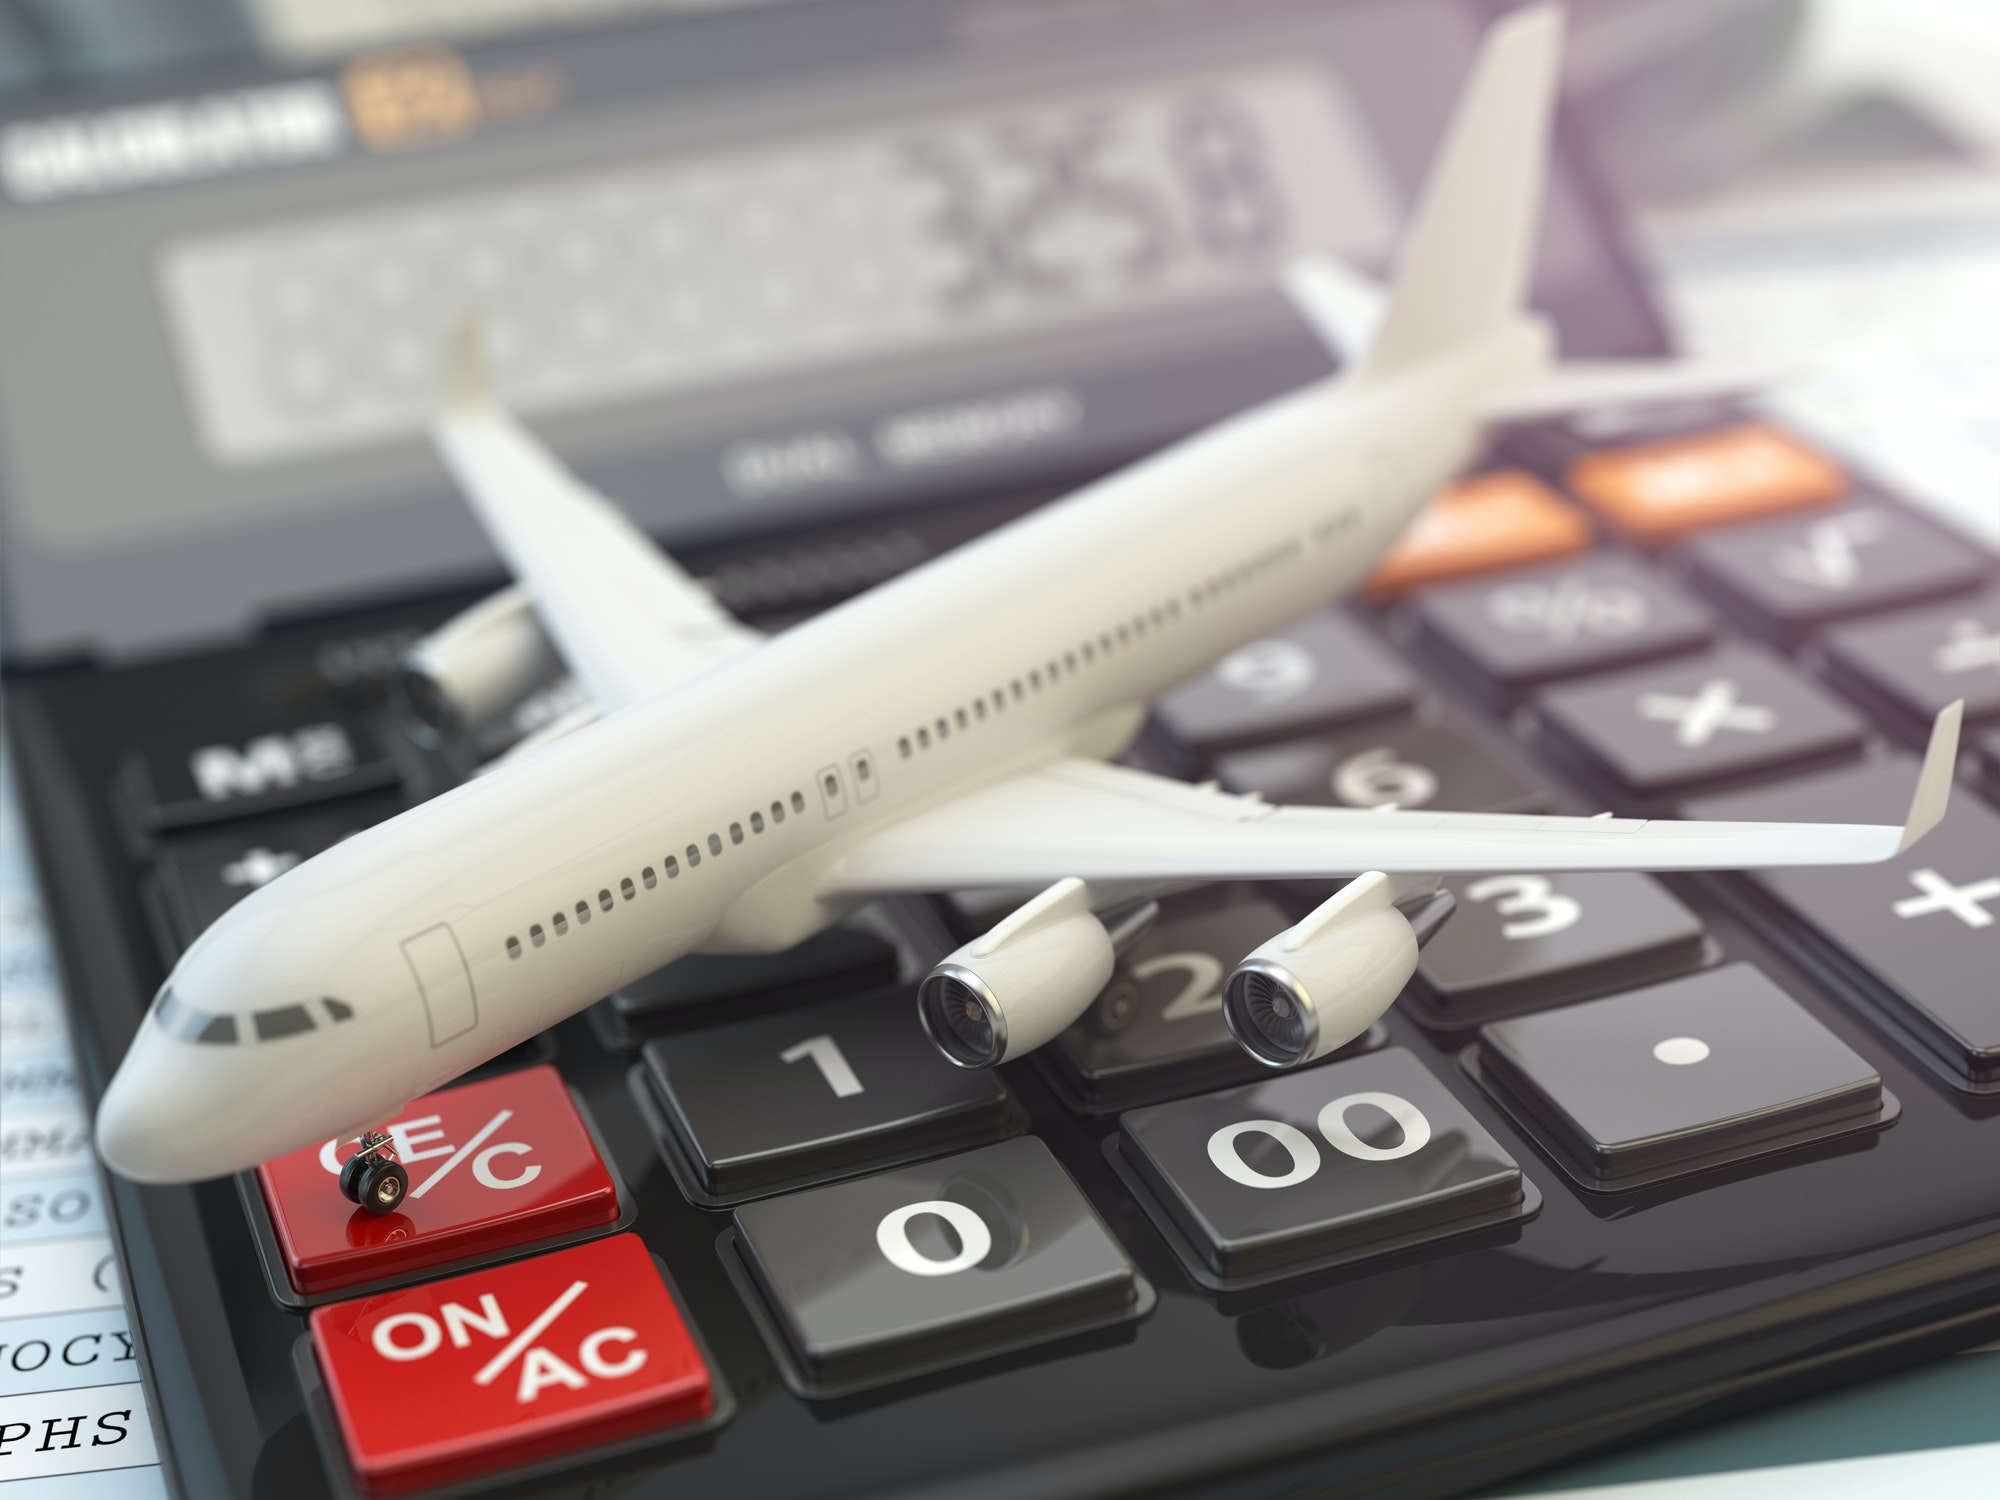 Delivering Value from Shrinking Corporate Travel Budgets in Uncertain Economic Times